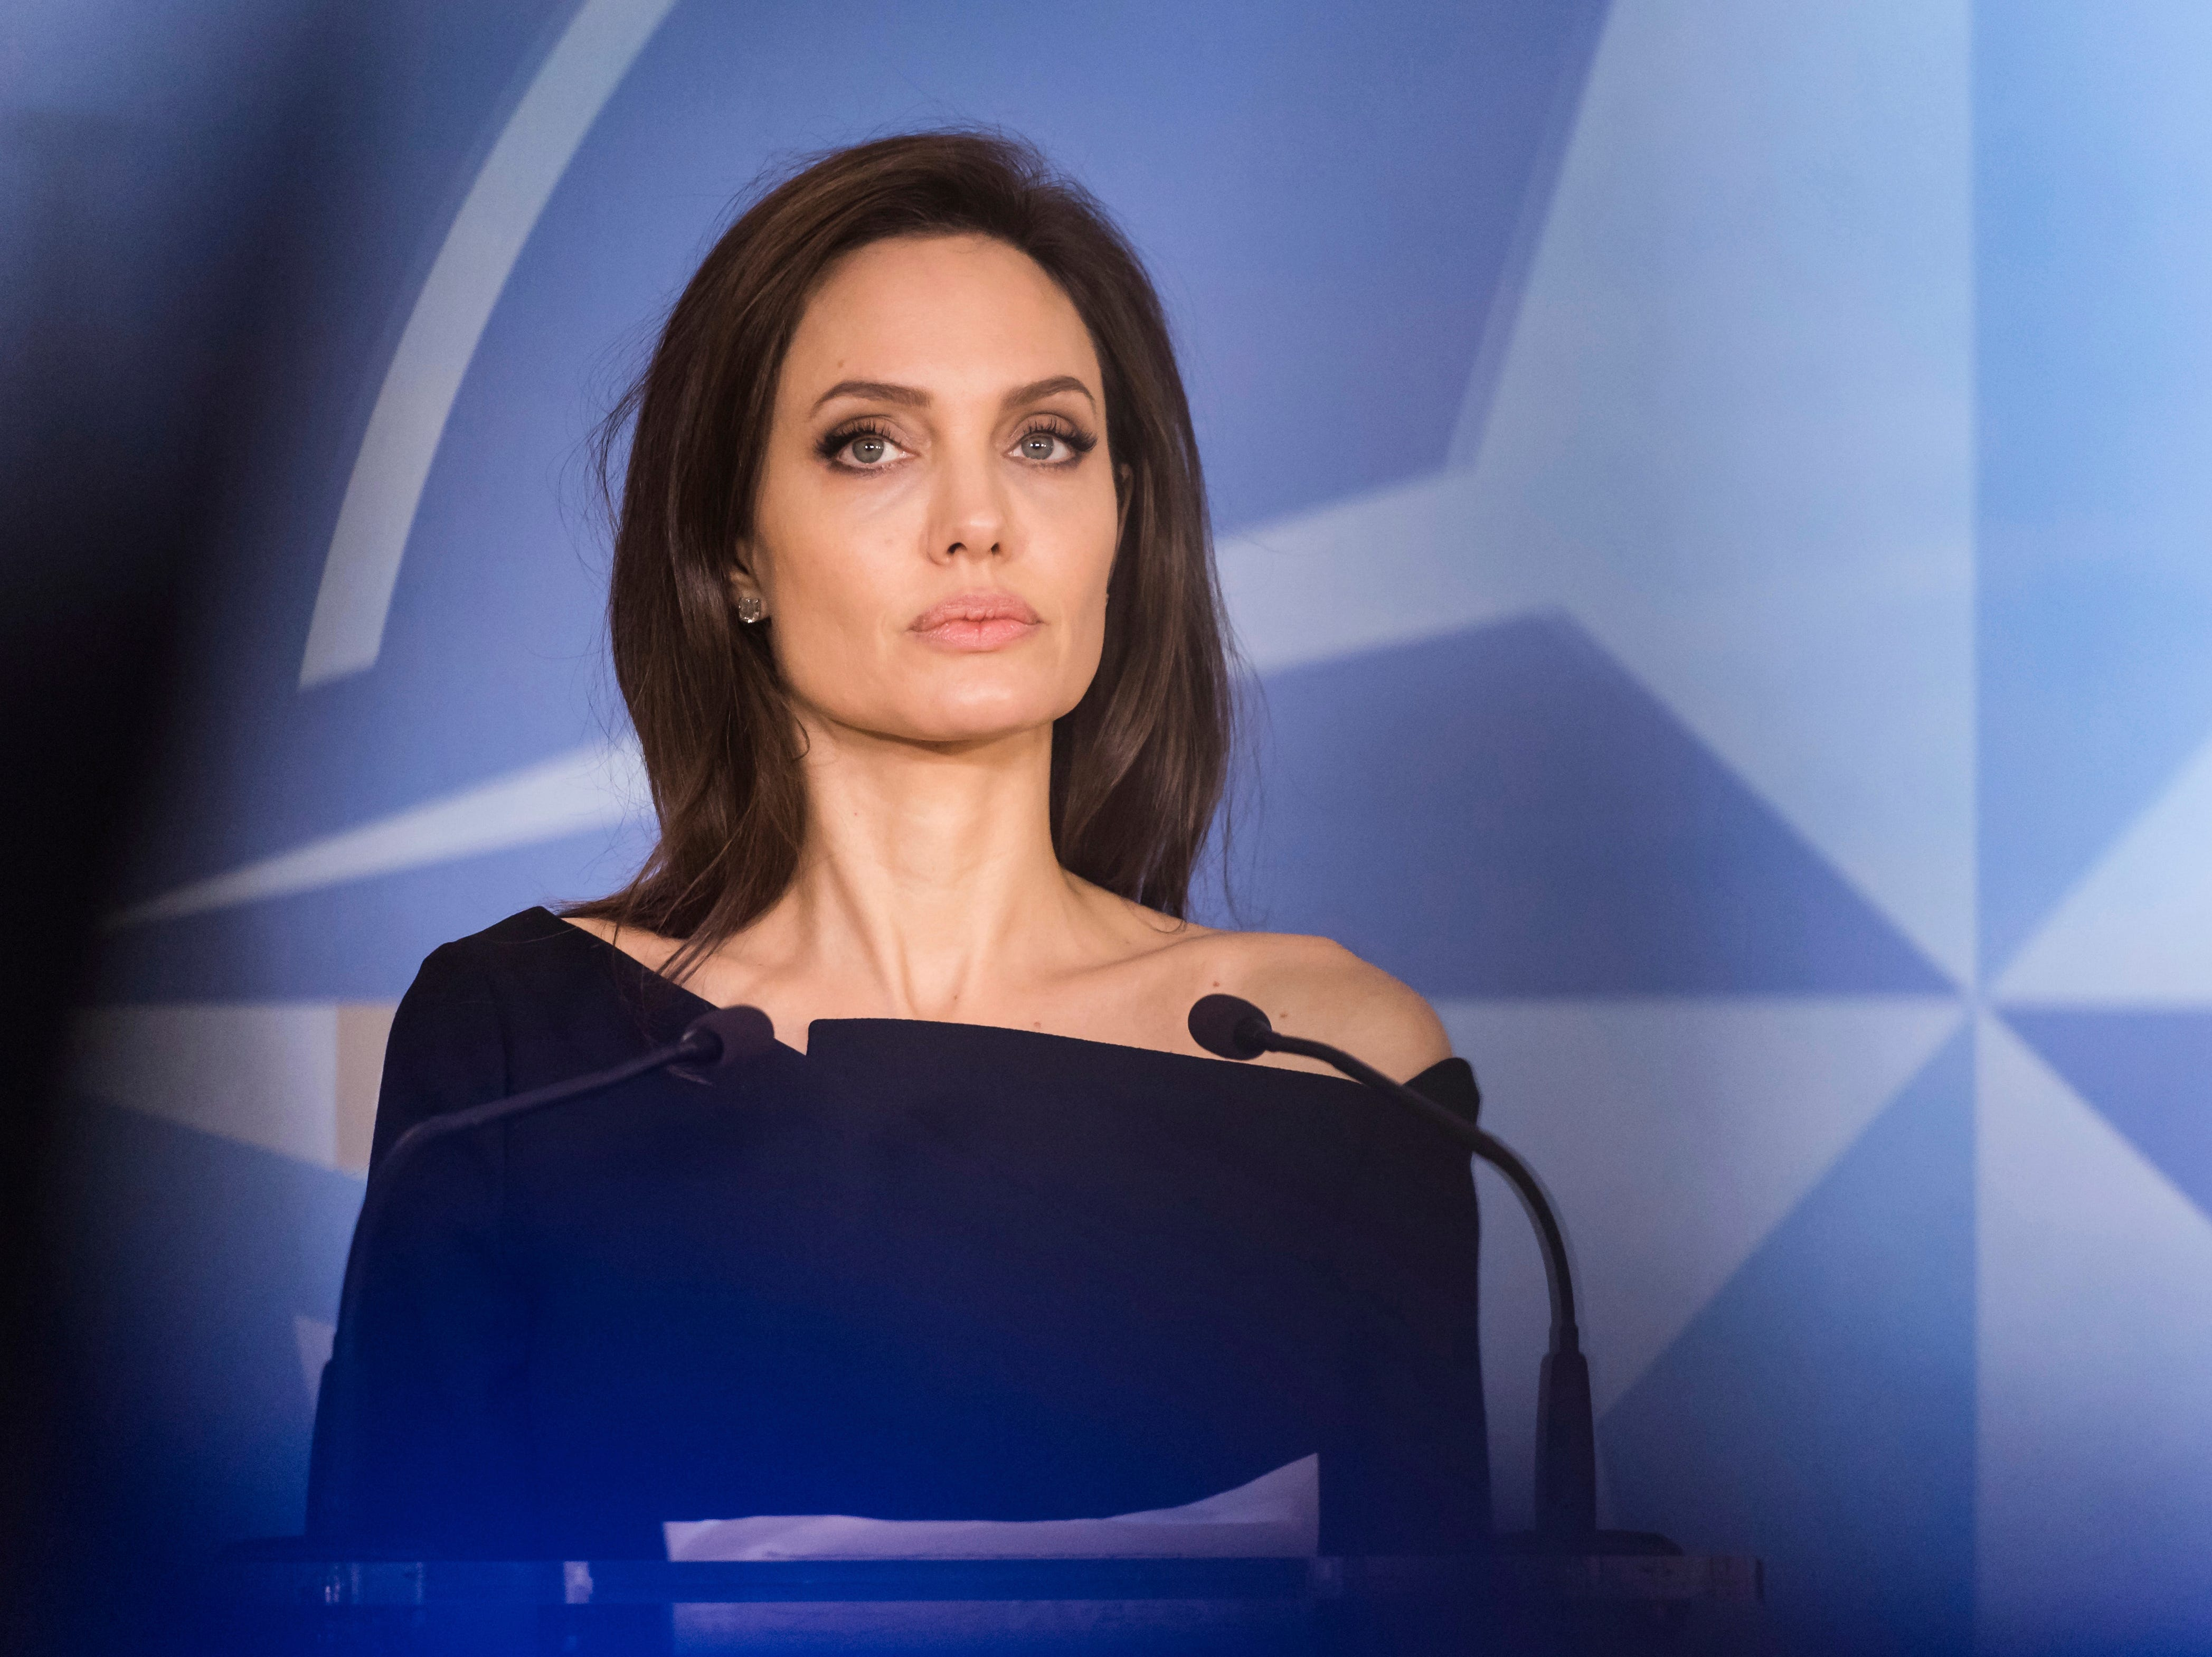 FILE - In this file photo dated Wednesday, Jan. 31, 2018, Special Envoy for the United Nations High Commissioner for Refugees Angelina Jolie addresses the media at NATO headquarters in Brussels.  American actress Jolie has not ruled out a move into politics, during an interview on BBC radio Friday Dec. 28, 2018, and has joked that she might be tough enough to take the rough and tumble that comes with it. (AP Photo/Geert Vanden Wijngaert, FILE) ORG XMIT: LON101